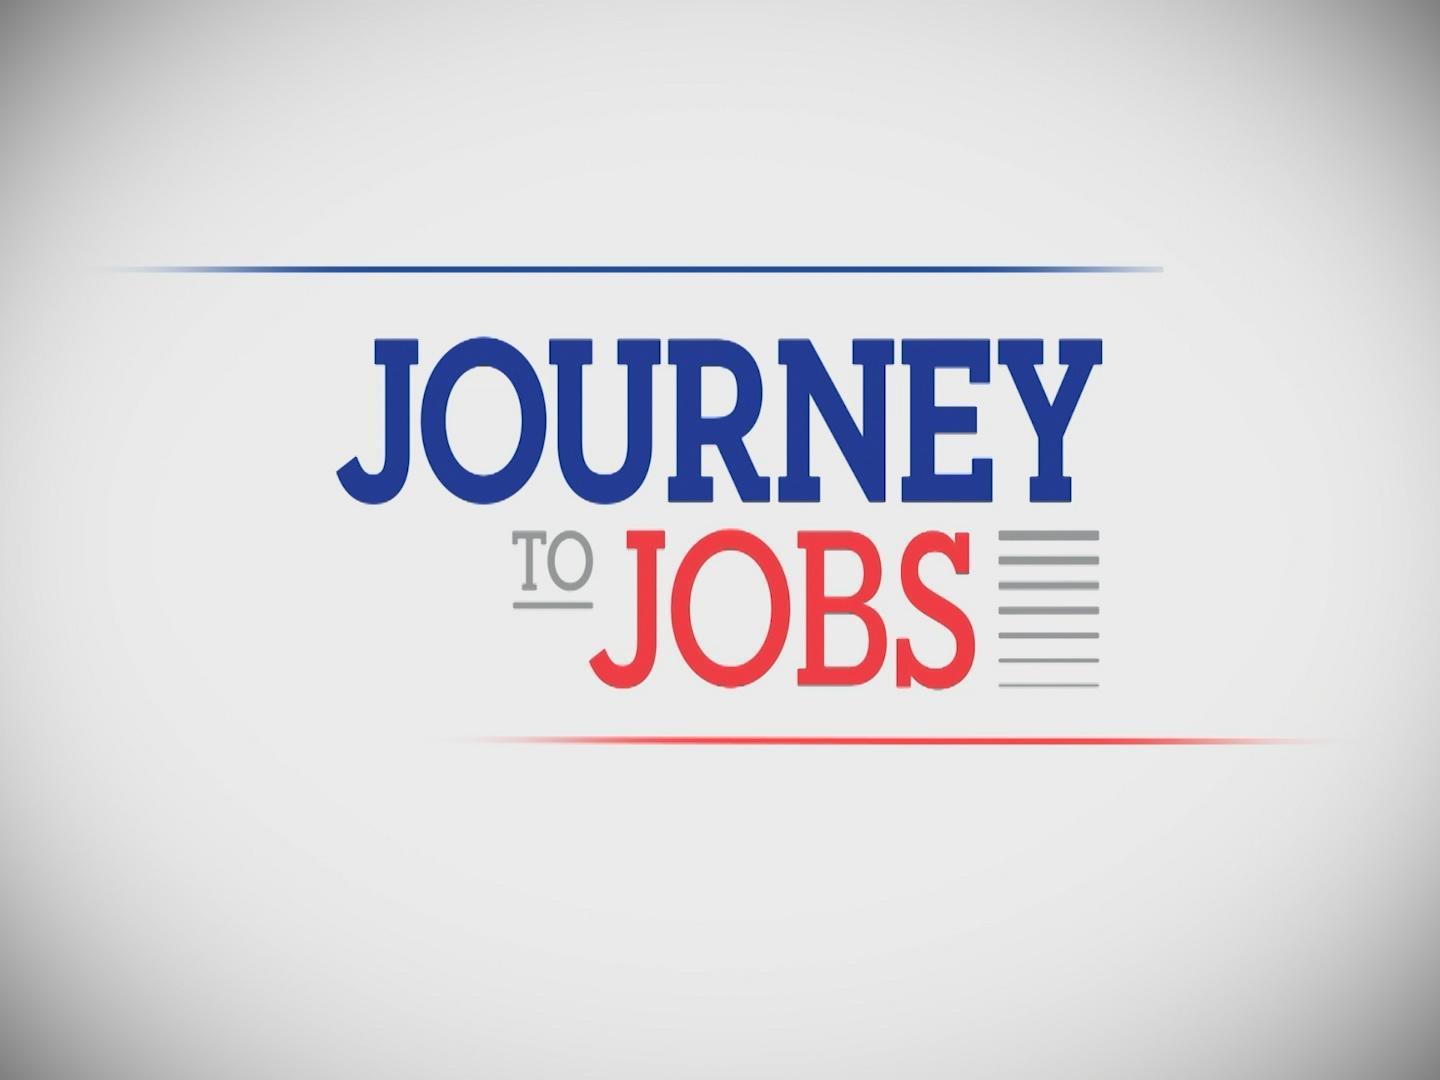 Journey to Jobs